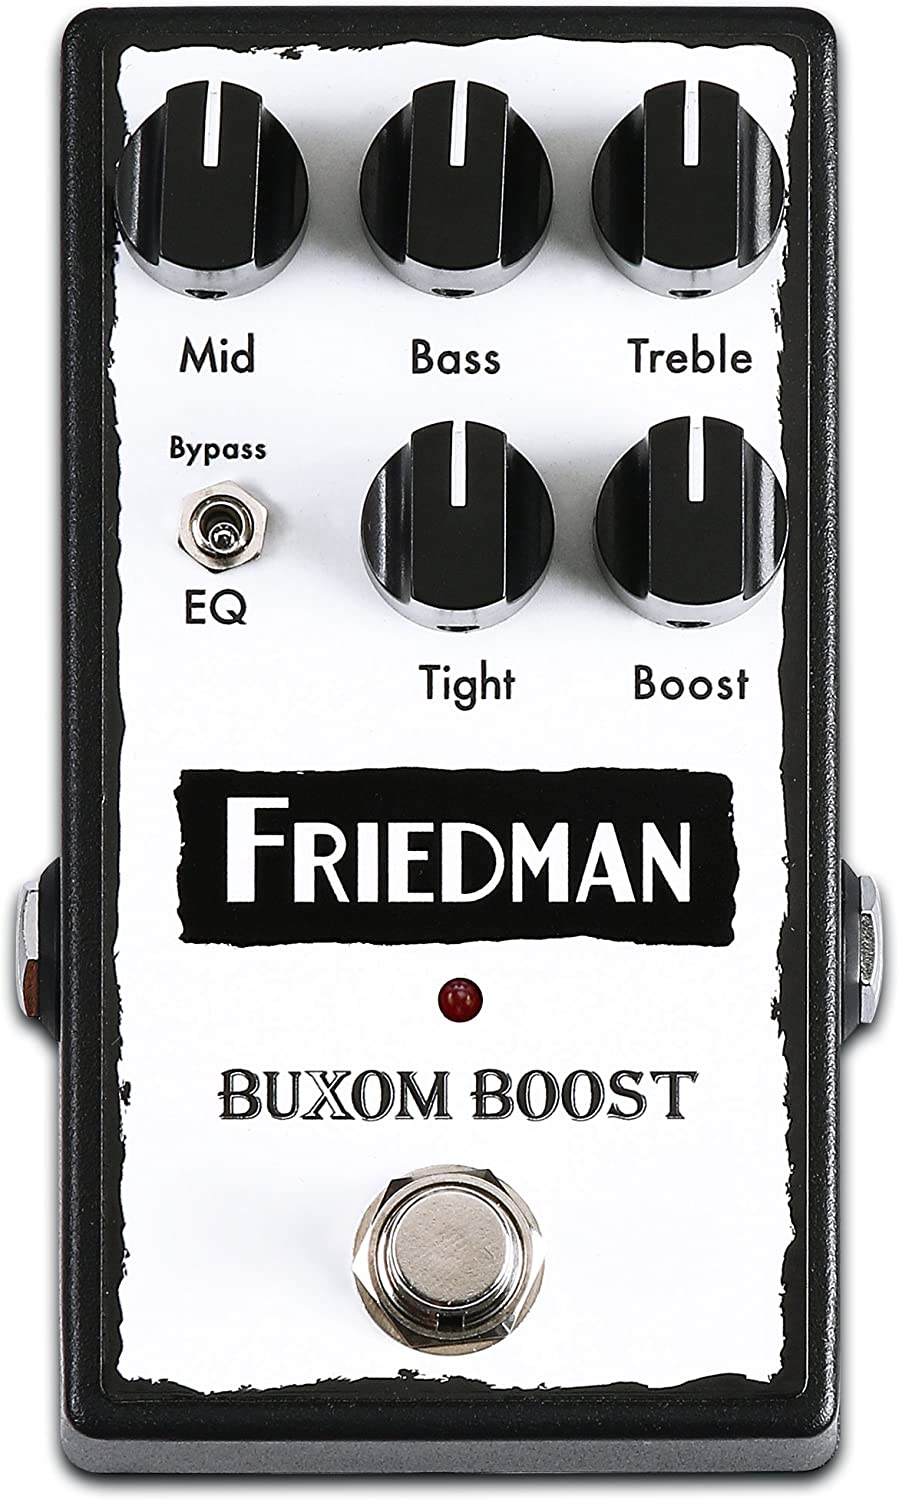 Friedman Amplification Buxom Boost Guitar Effects Pedal